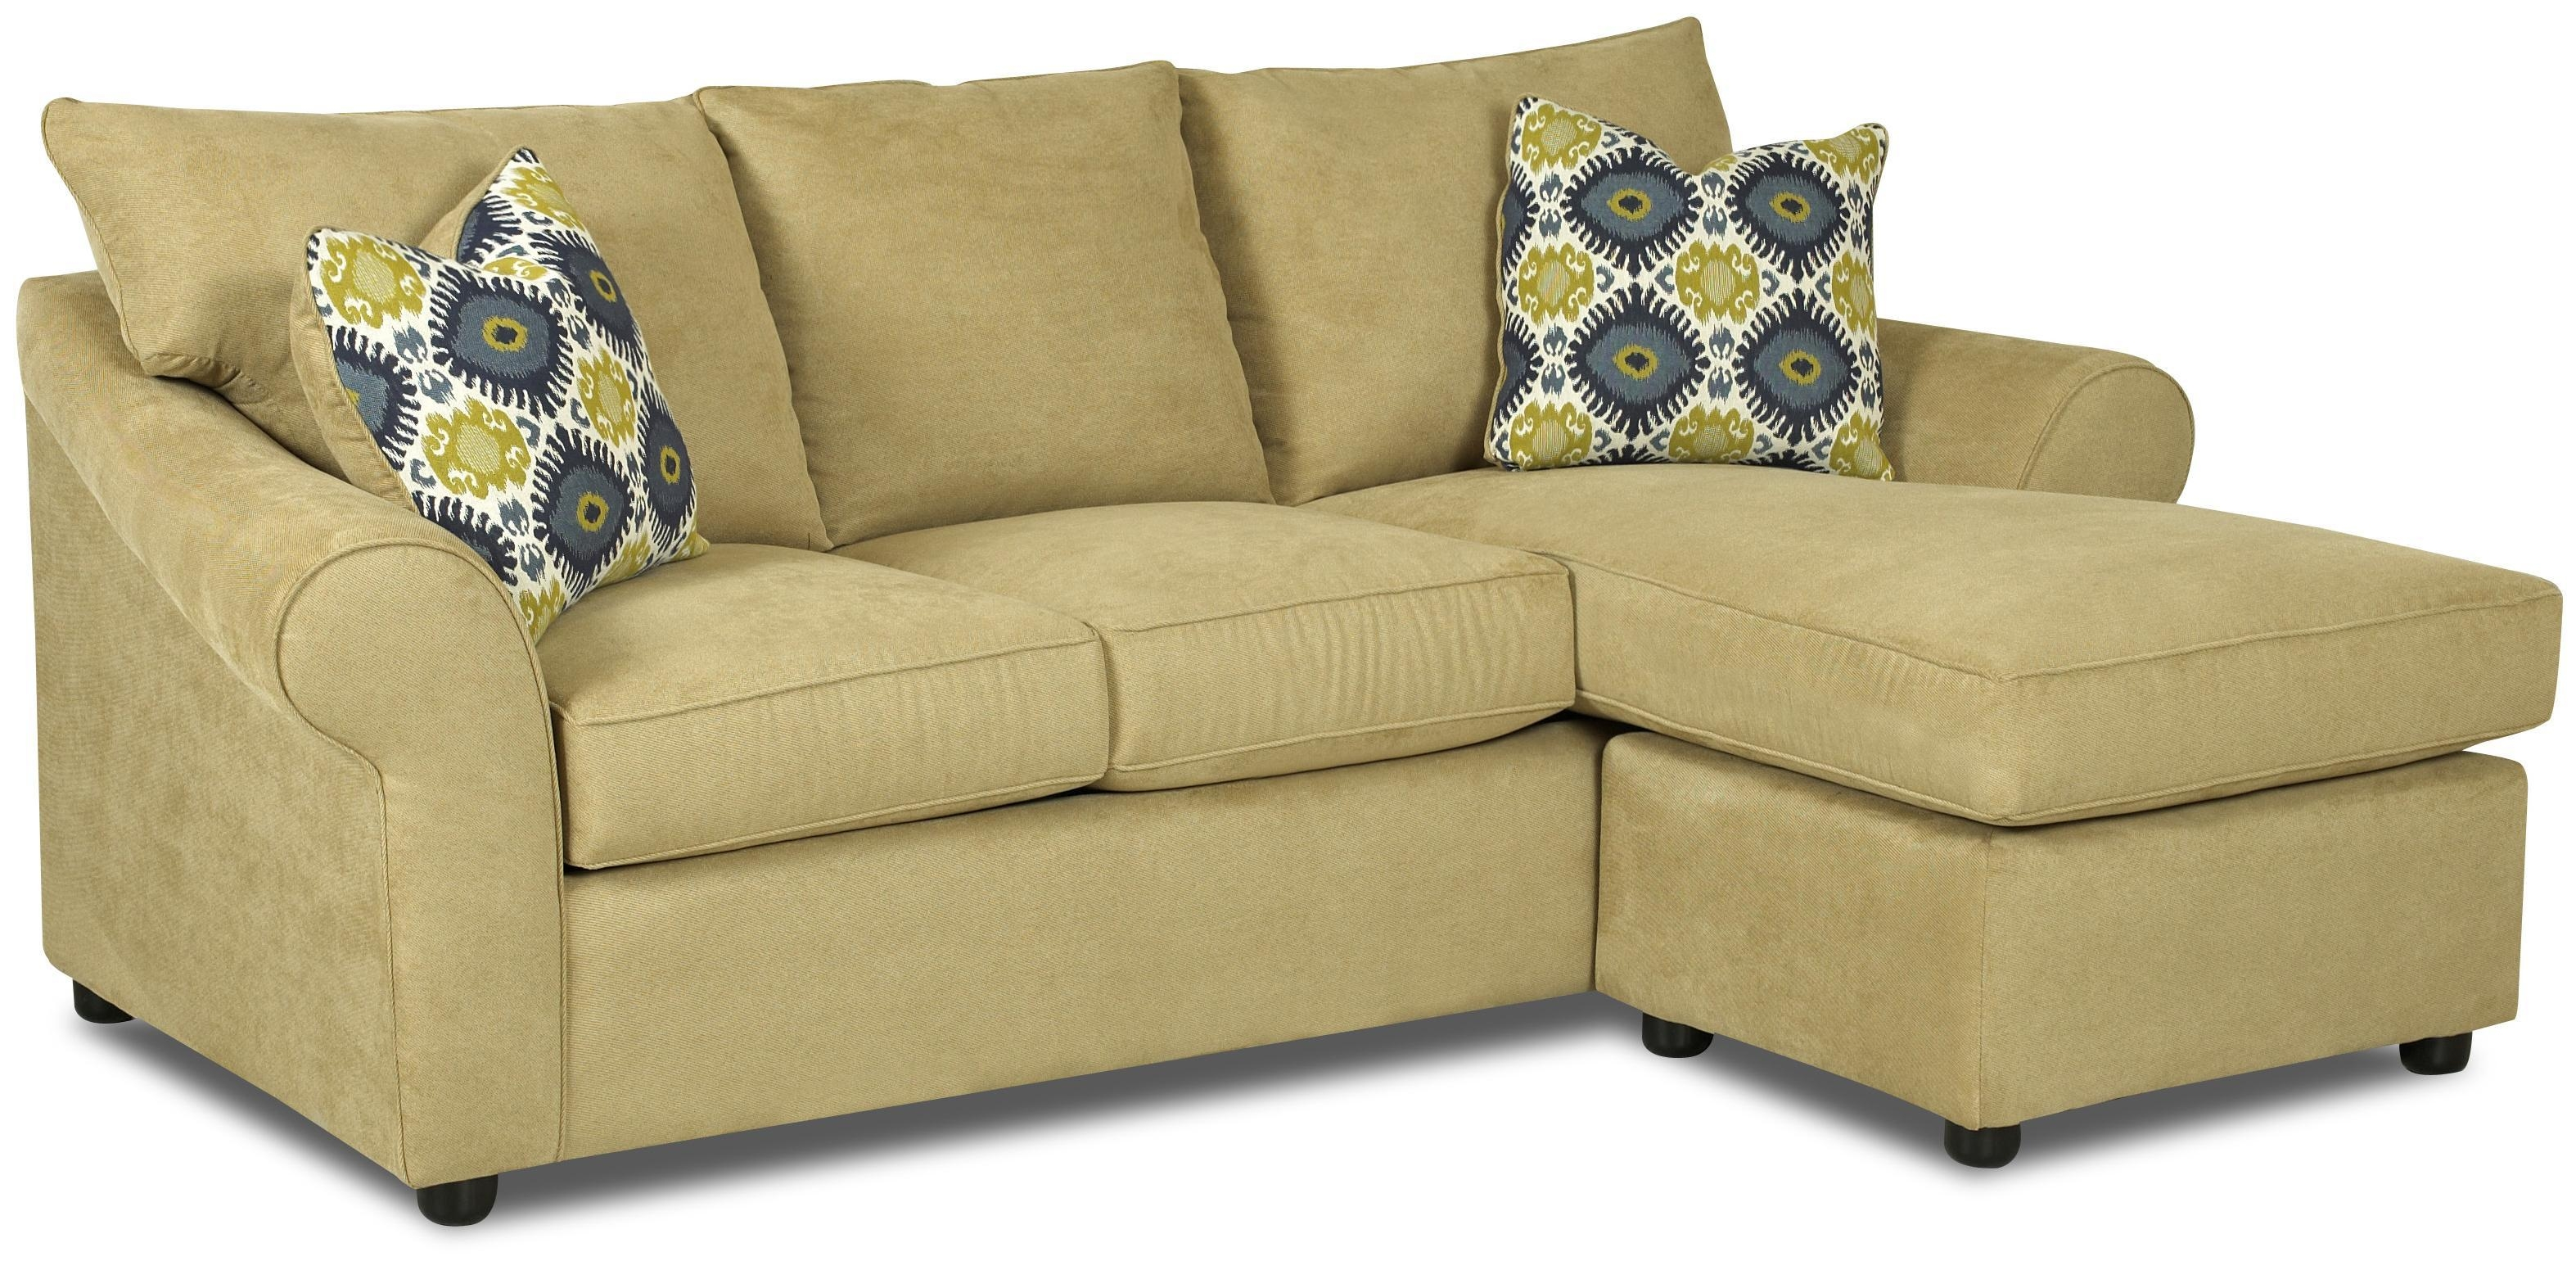 Featured Image of Sofas With Chaise Longue